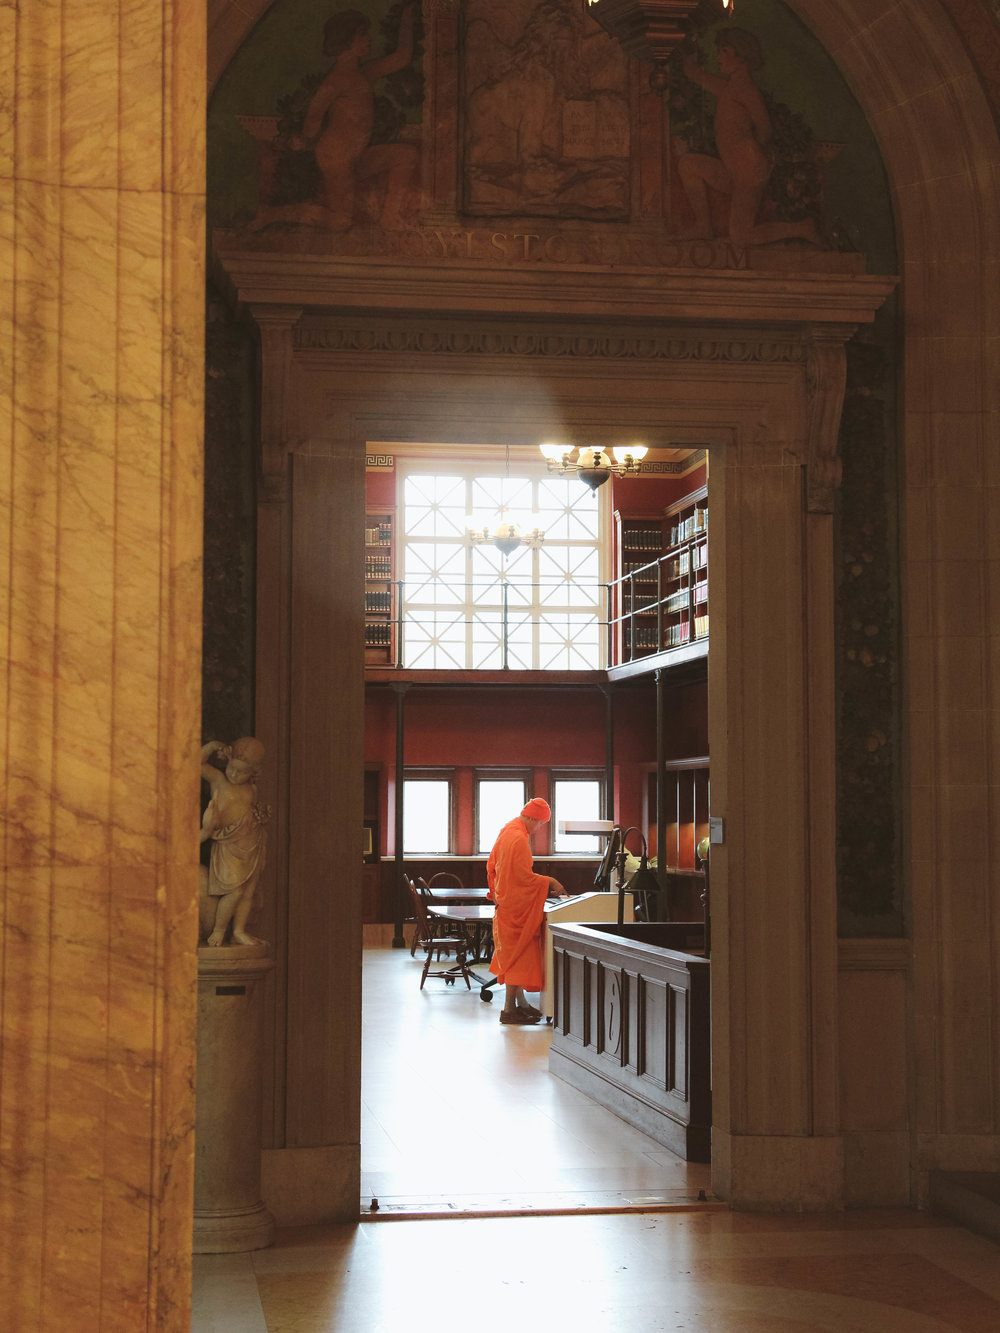 inside Great Boston library